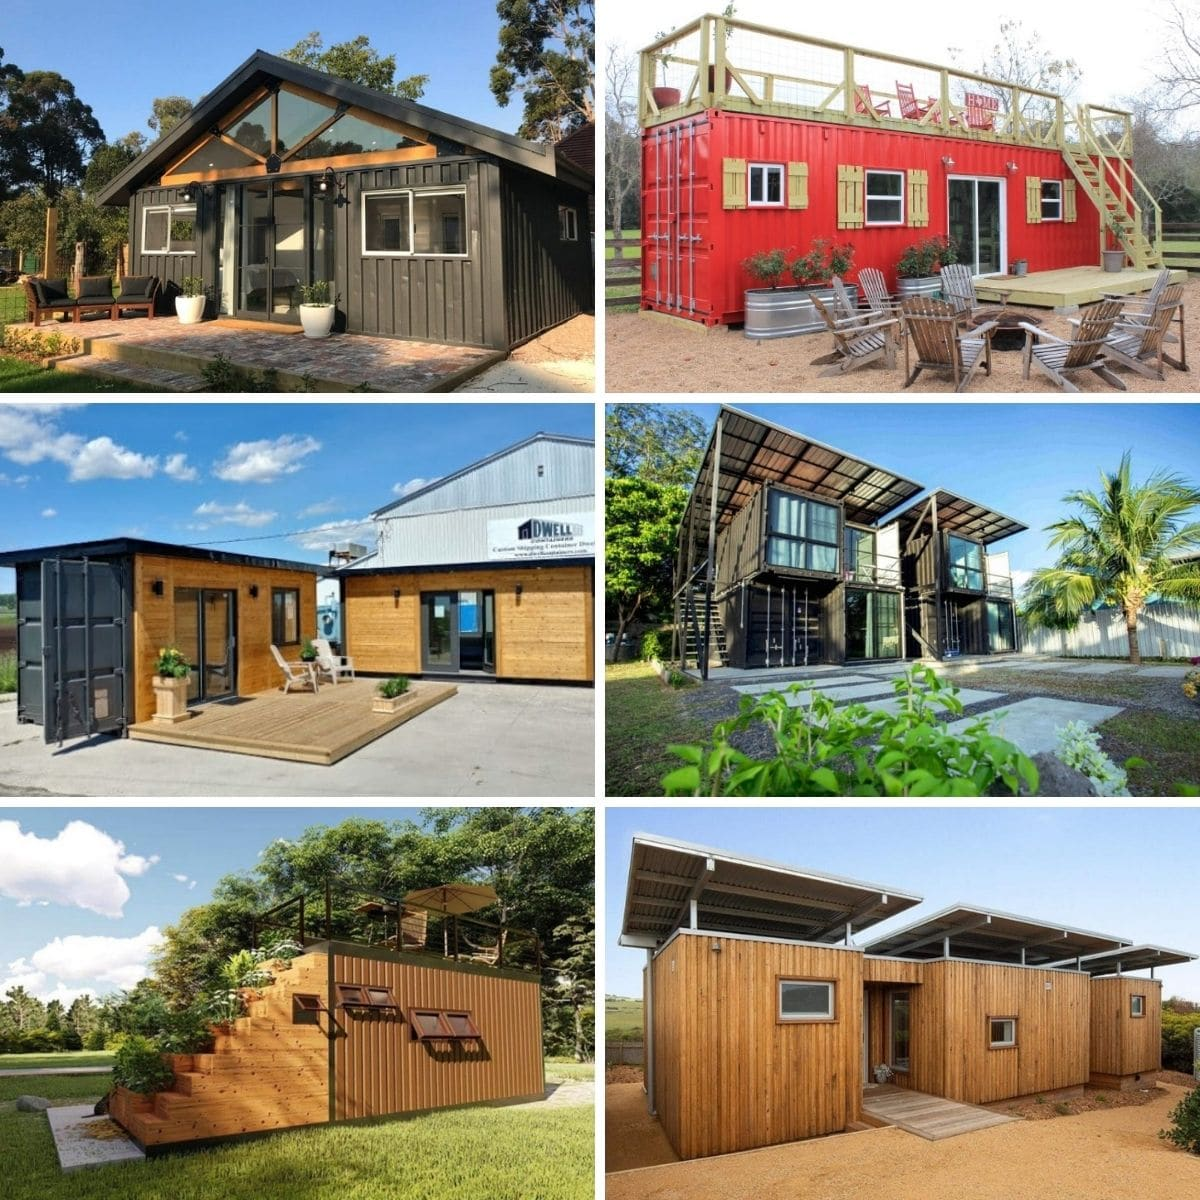 Collage photo featuring various container tiny houses form the post.